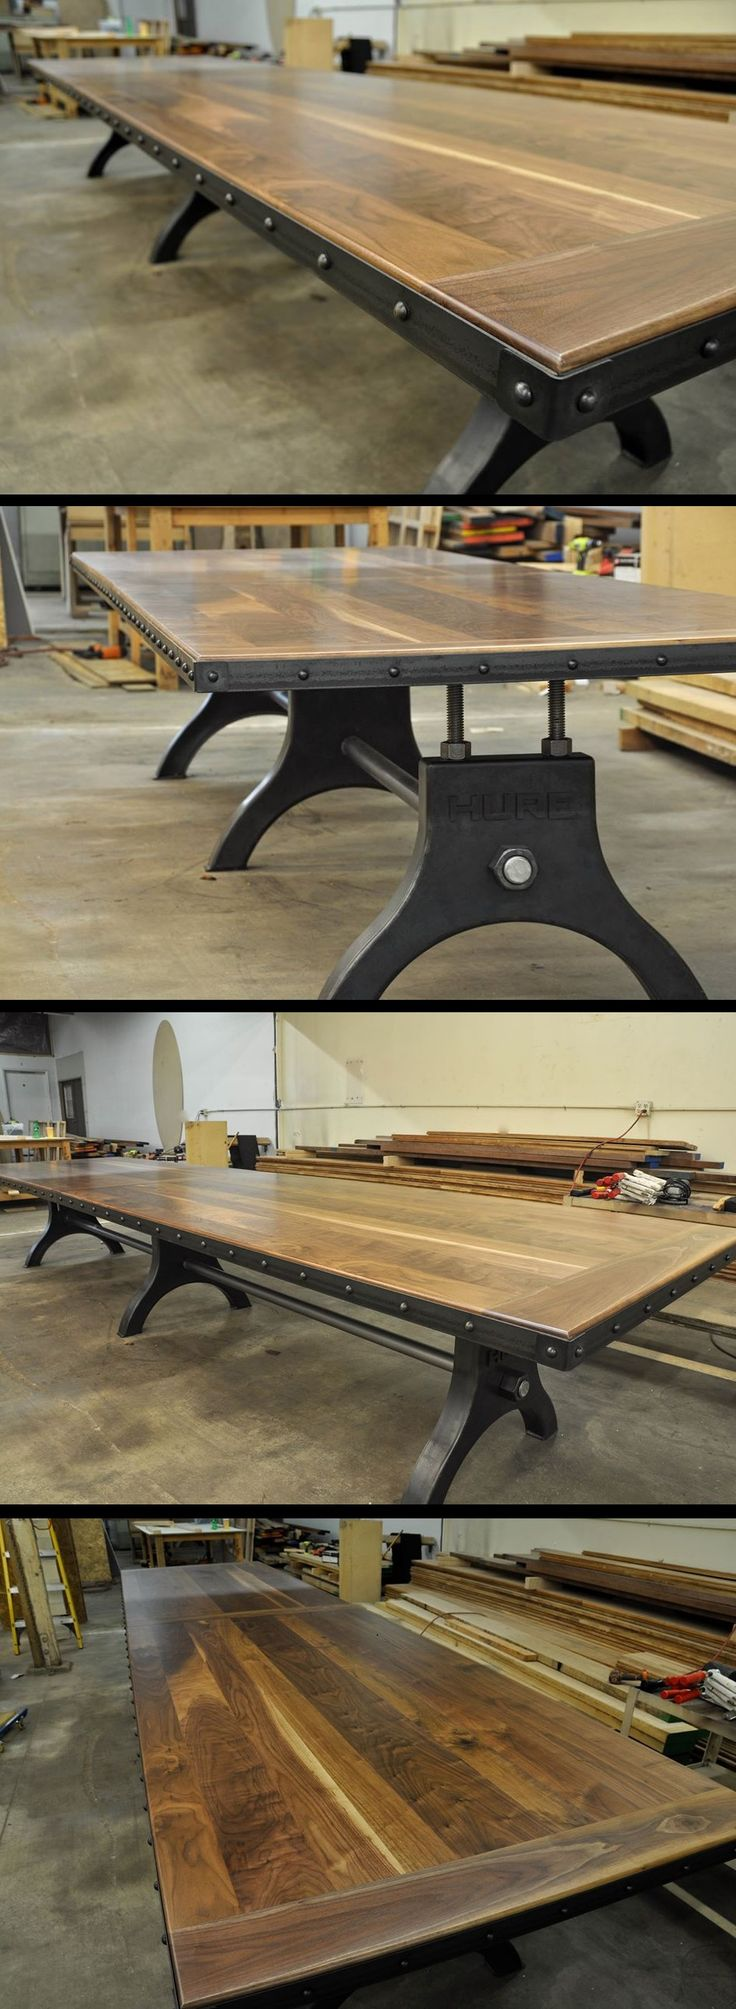 Post industrial table base vintage industrial furniture - 13 Best Images About Table Ideas On Pinterest Top Models